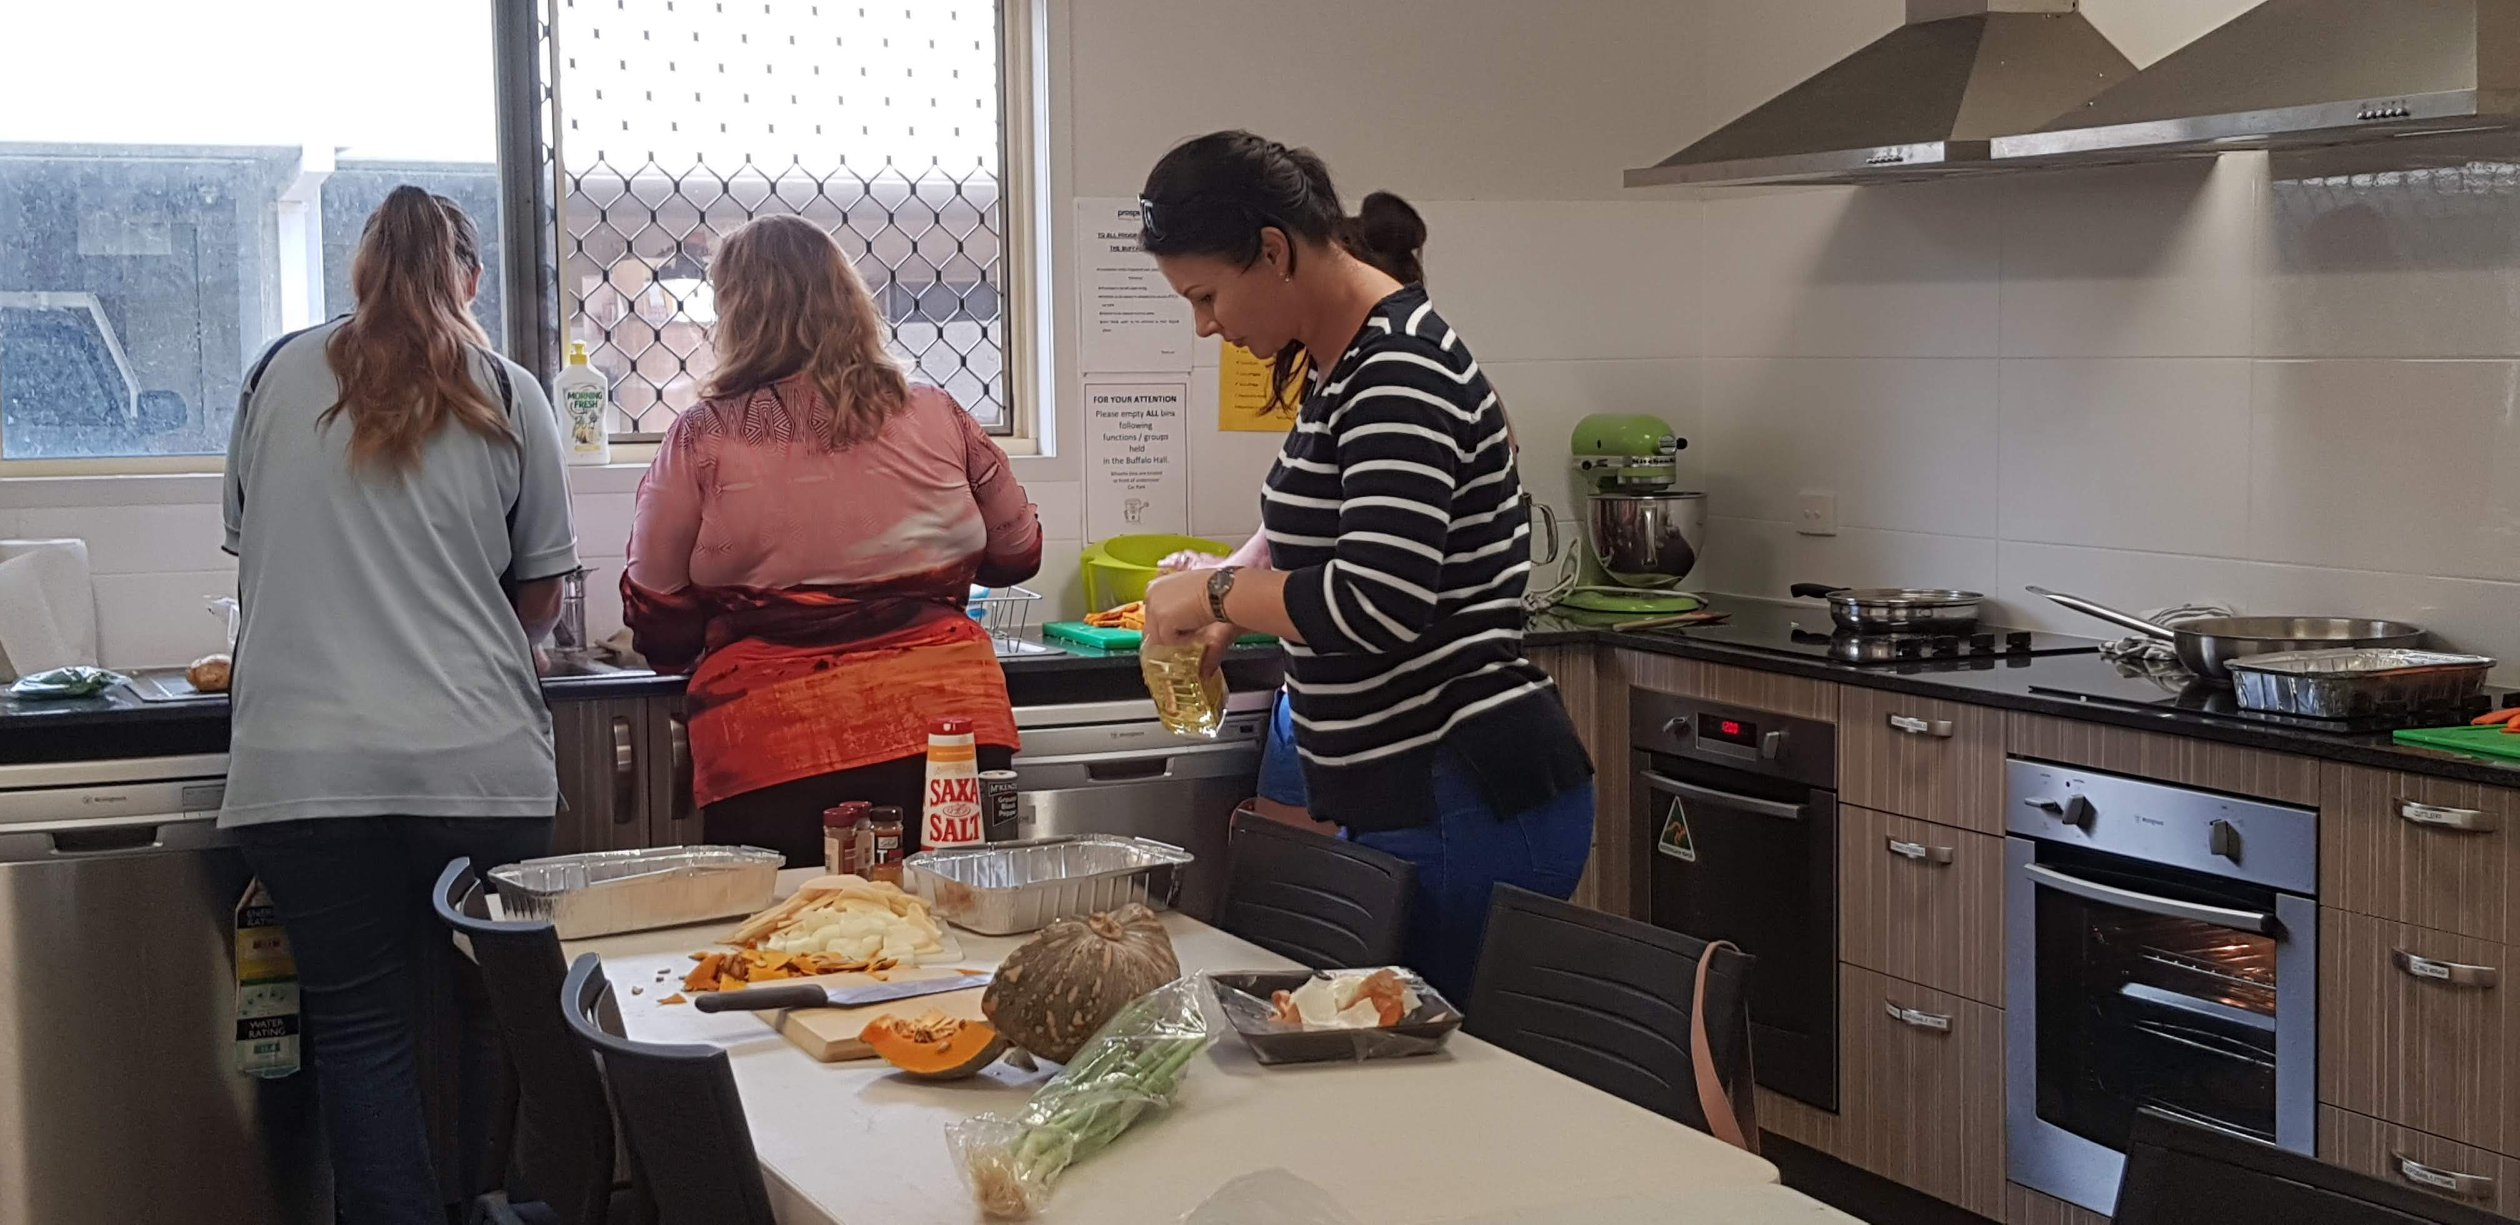 Family Support offering cooking classes